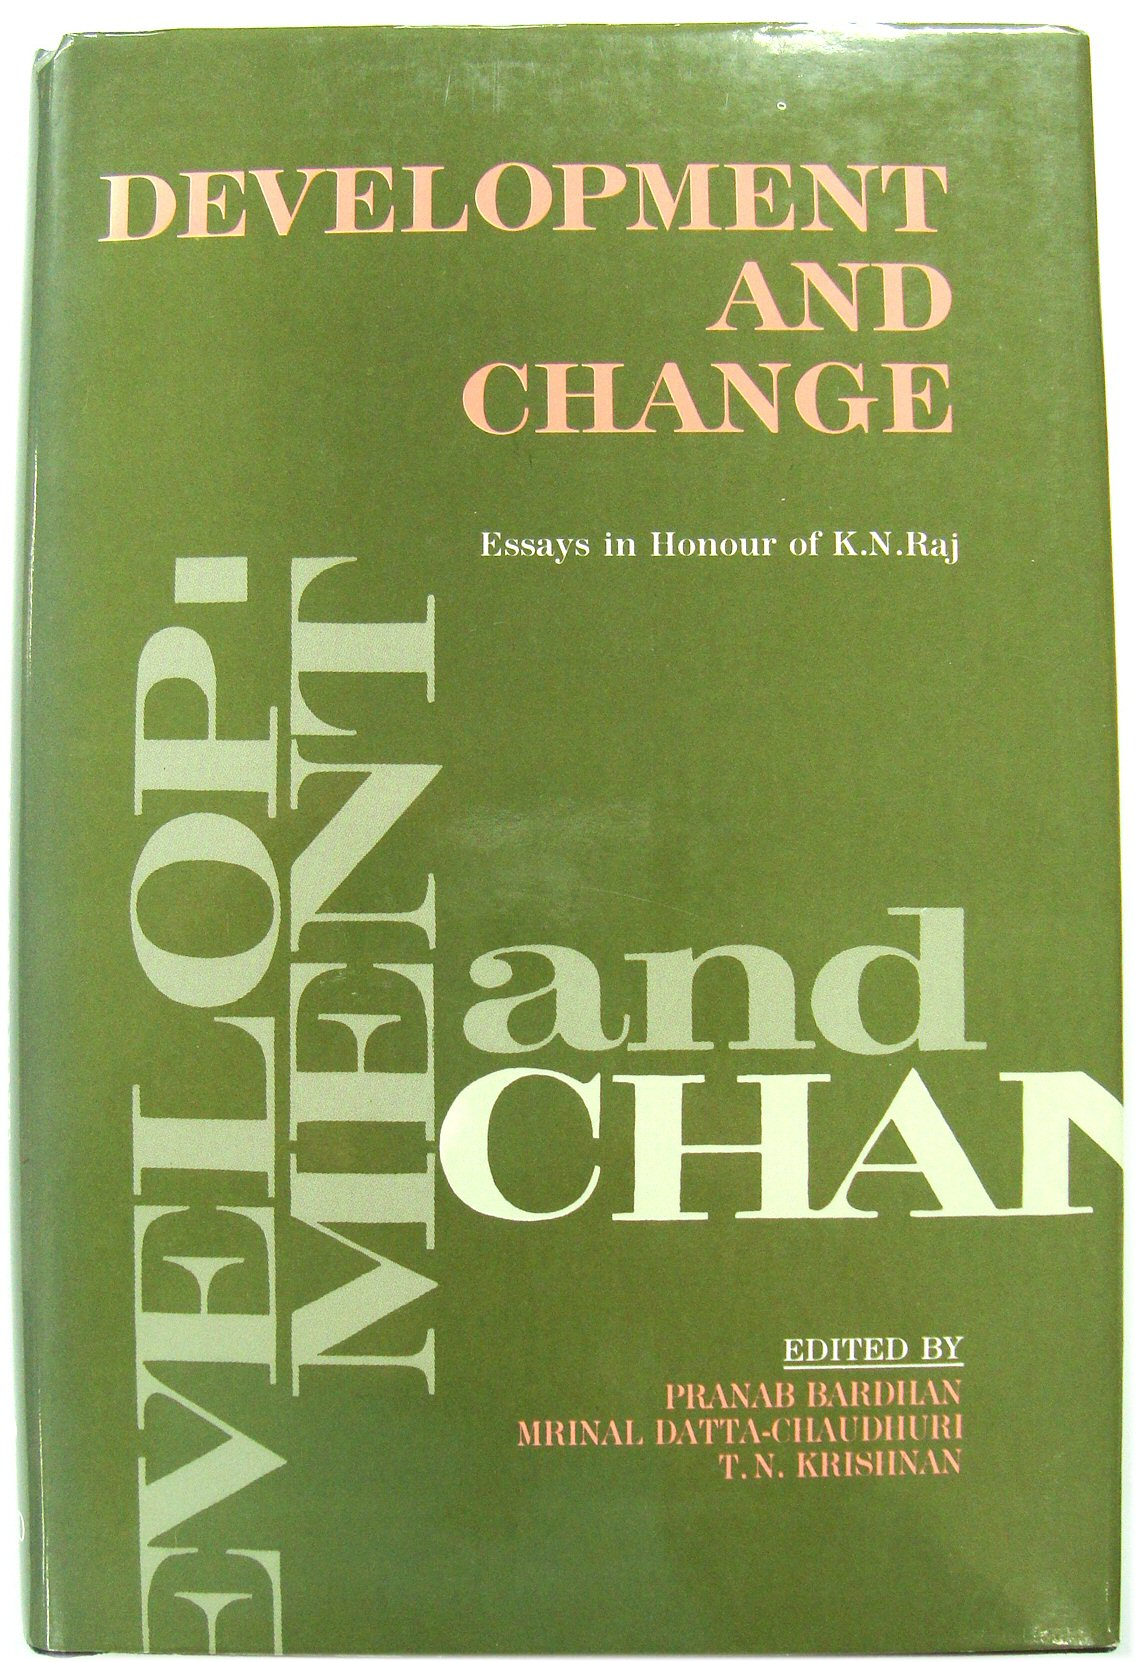 Image for Development and Change: Essays in Honour of K. N. Raj